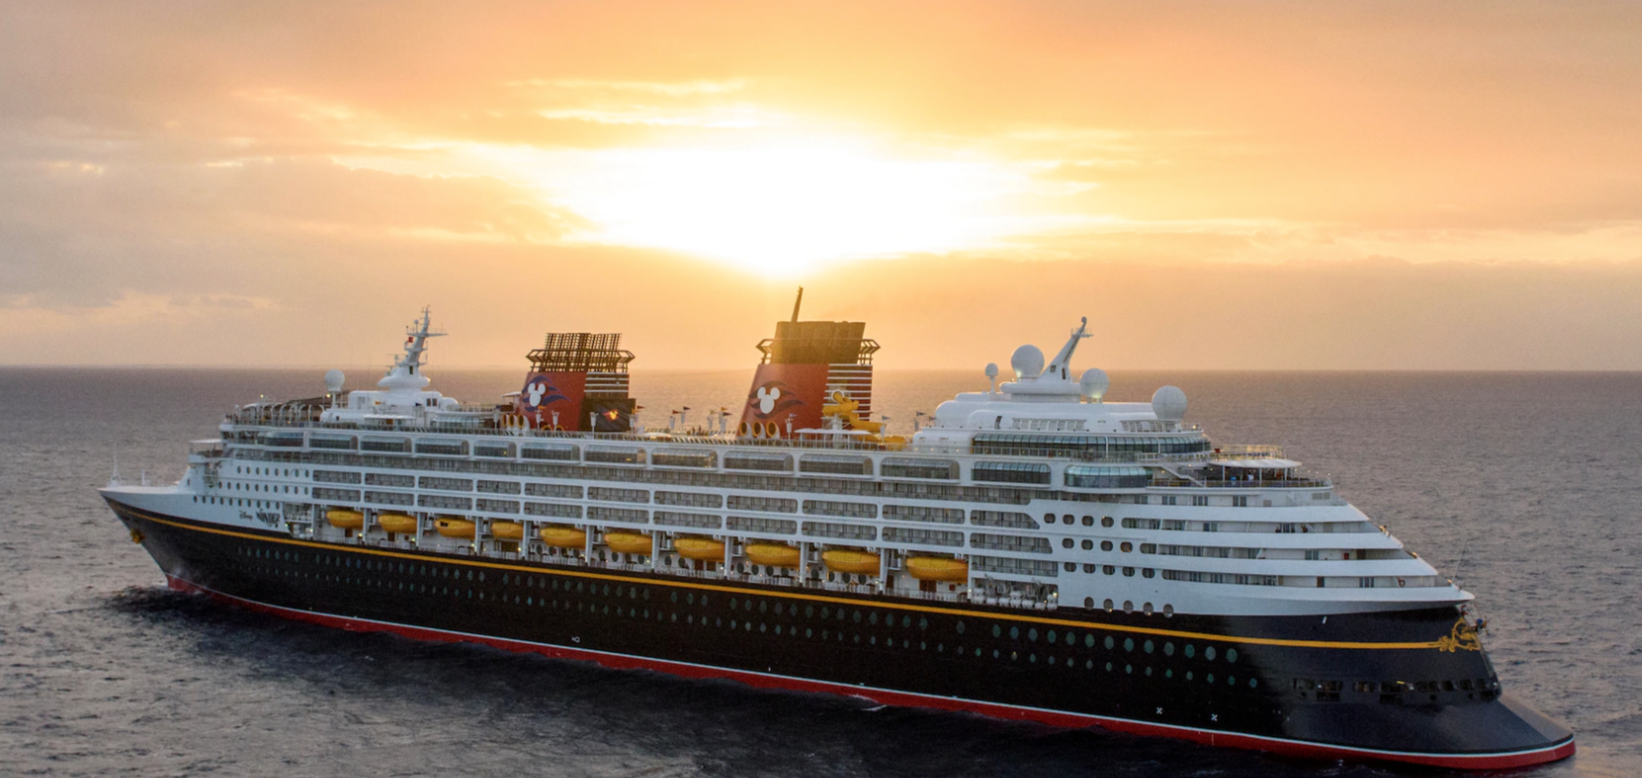 NEWS: Disney Cruise Line May Add Another Year-Round Port in Florida - AllEars.Net